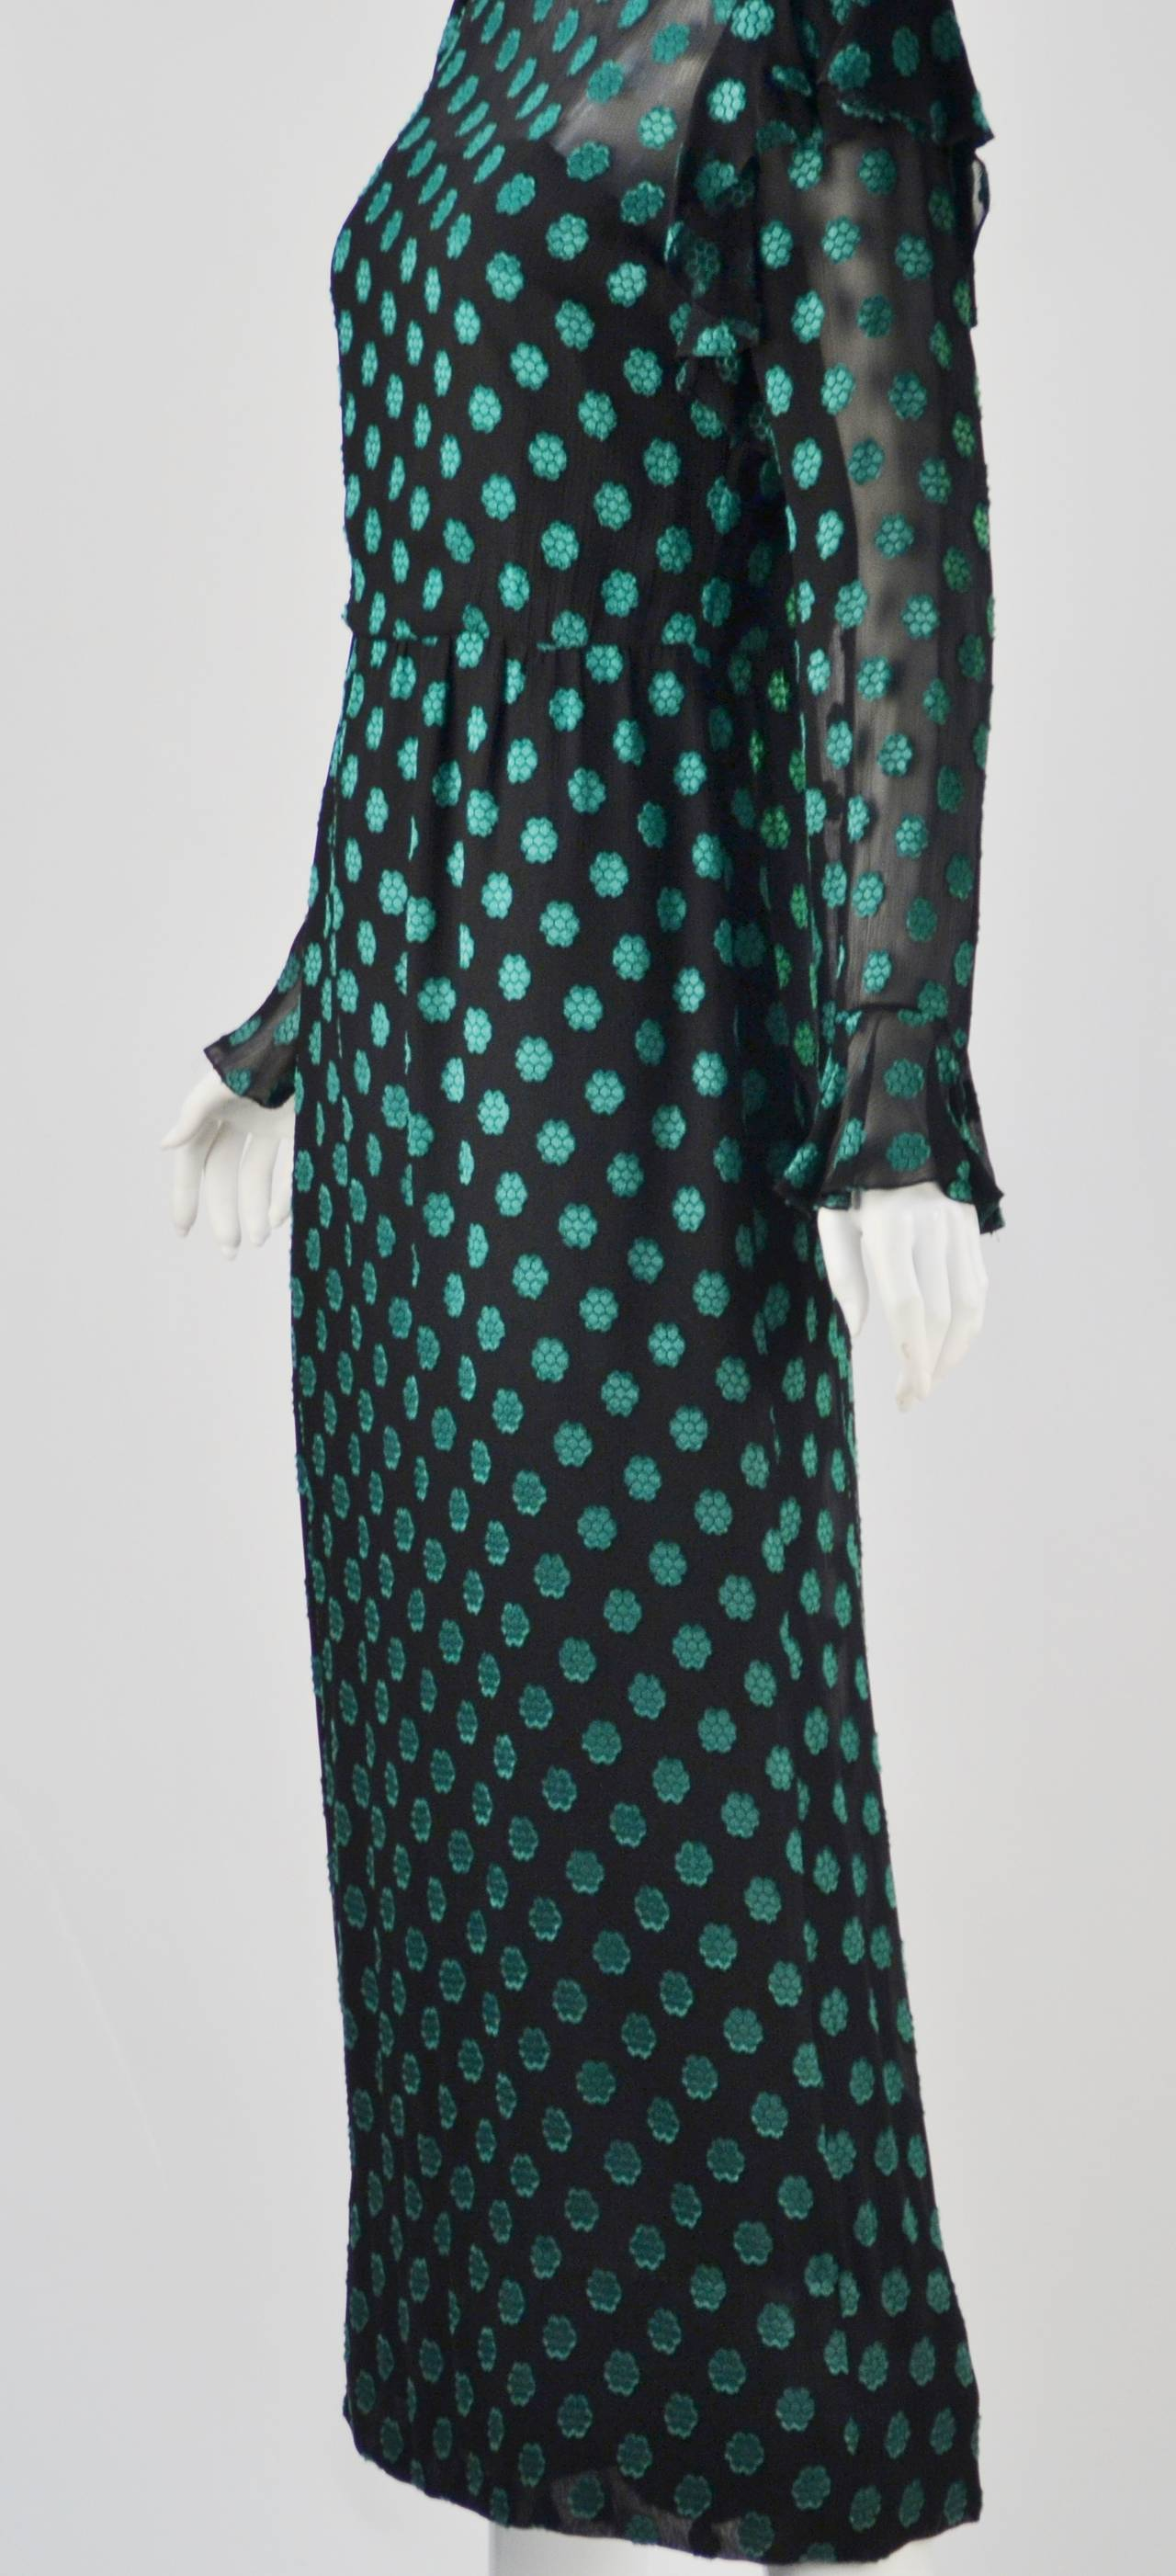 1980s Christian Dior Green Dress In Excellent Condition For Sale In Houston, TX